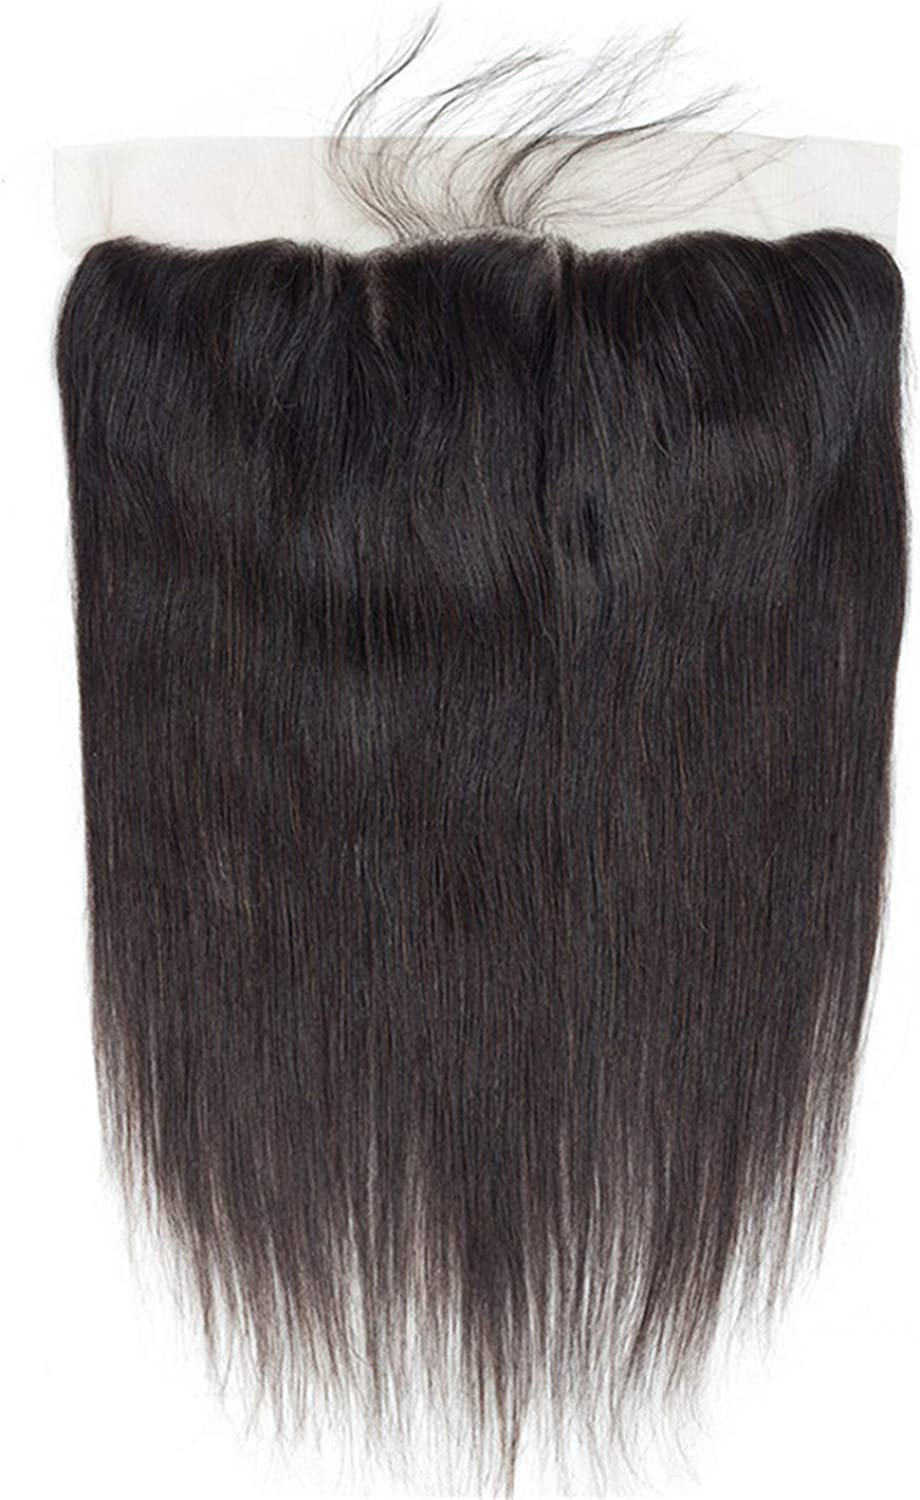 Anhon Straight Hair 13  4 Lace Frontal Closure With Baby Hair 100% Human Hair Free Middle Three Part Lace Closure,16Inches,Middle Part